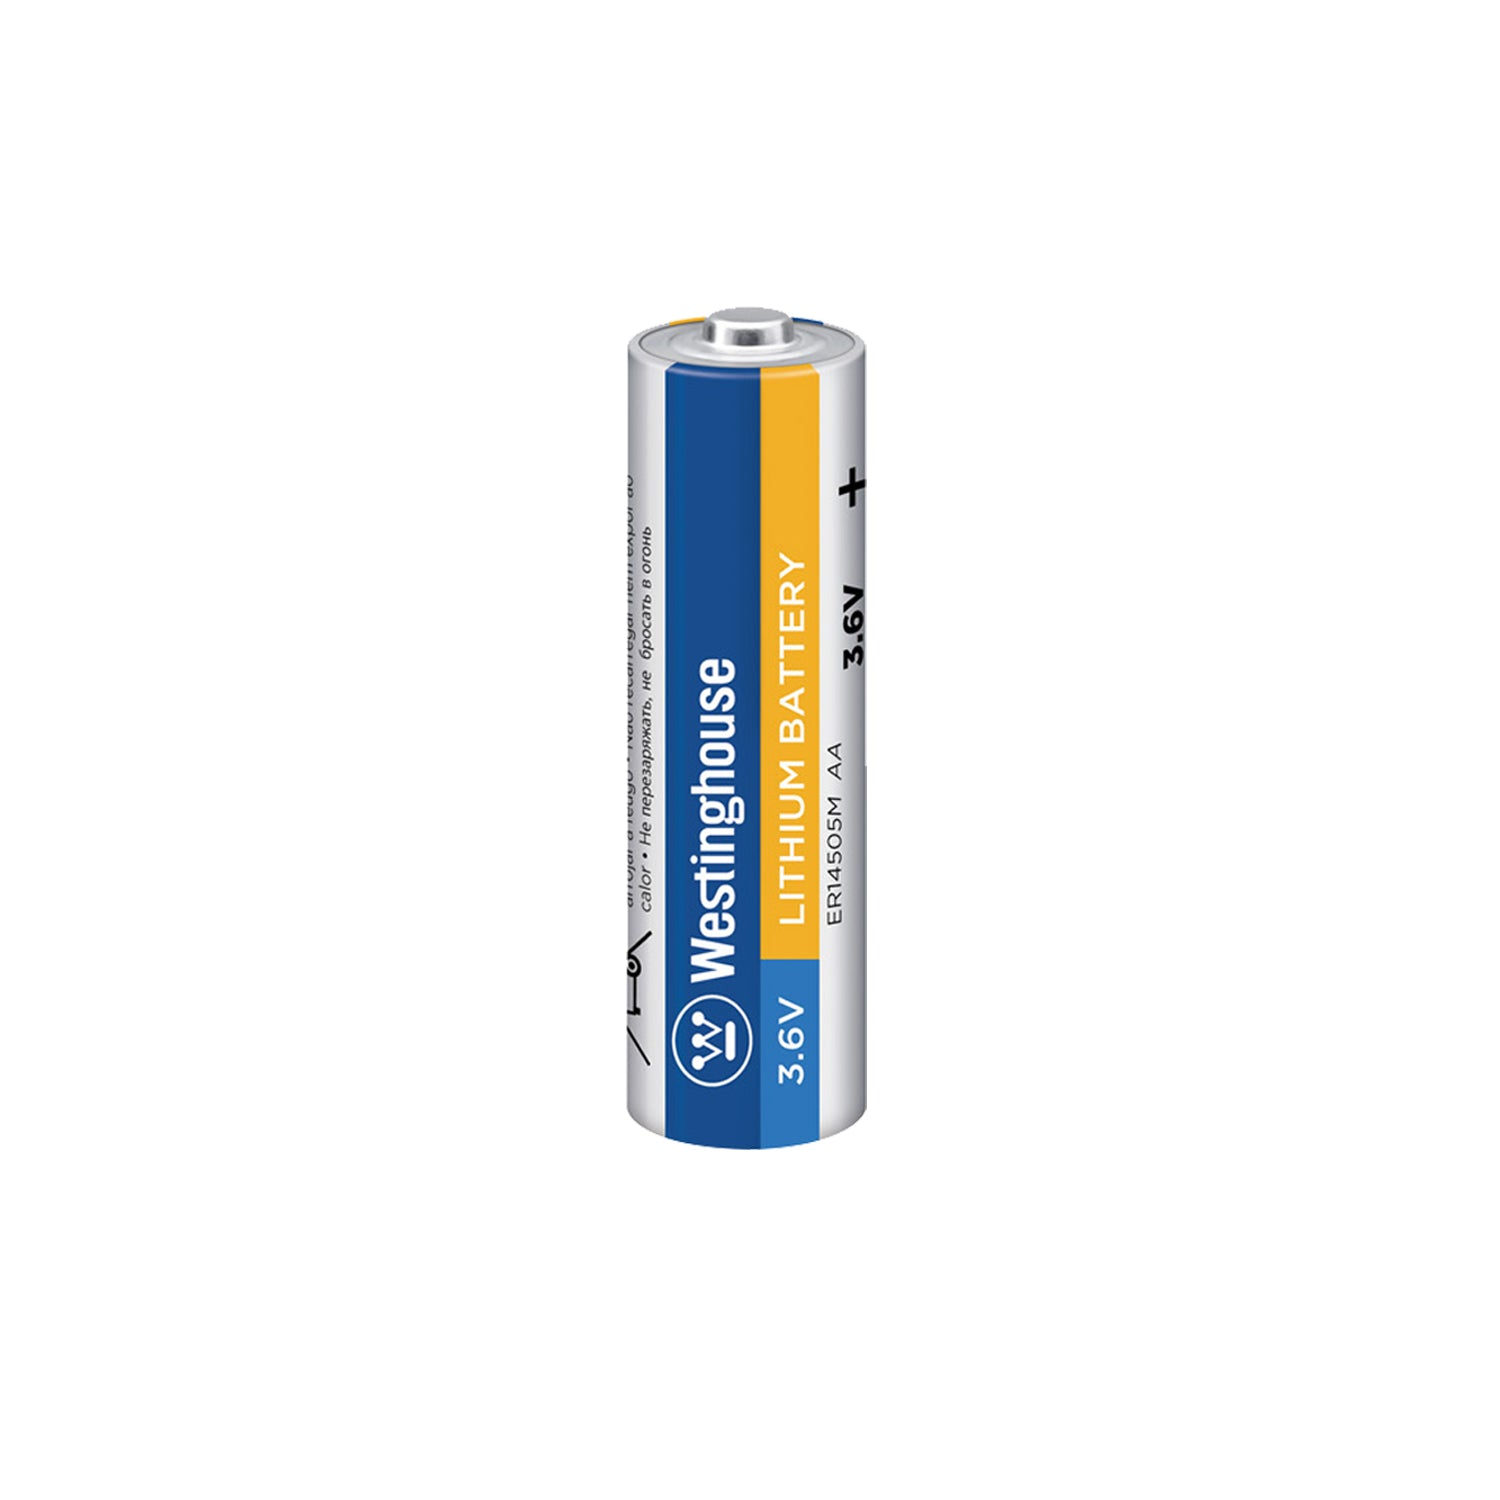 ER14505 AA Size 3.6V Lithium Primary Battery for Specialized Devices Bulk